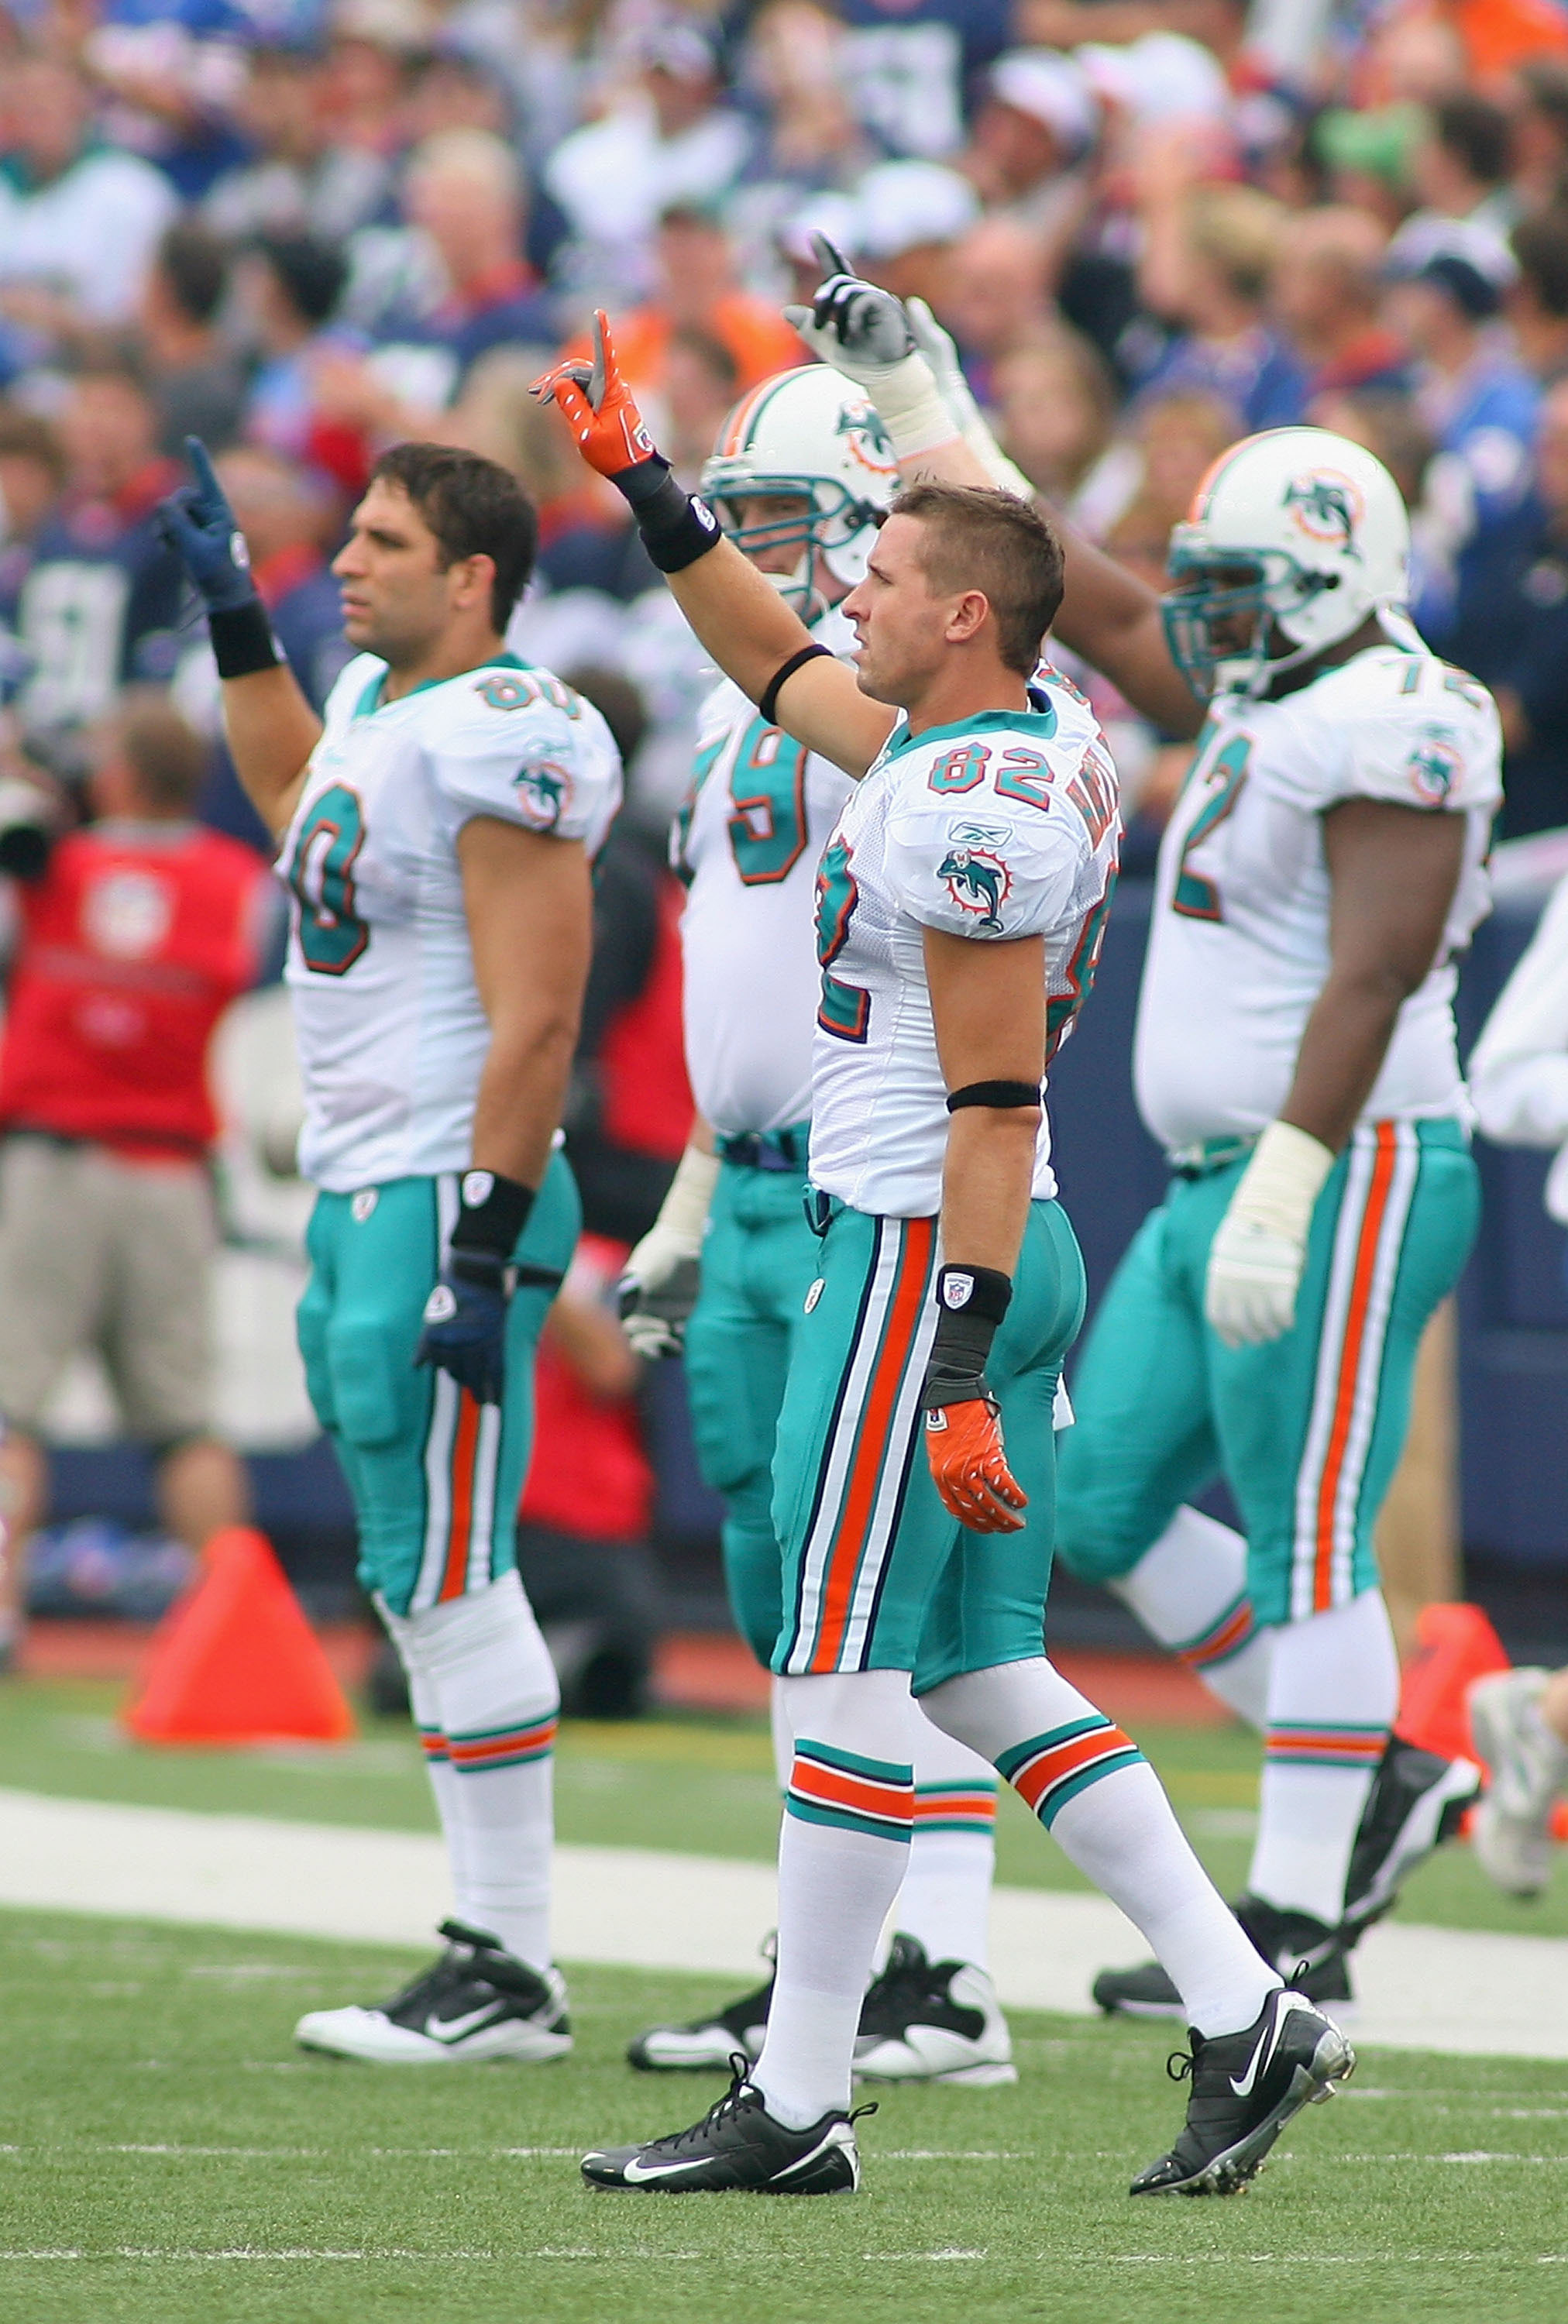 ORCHARD PARK, NY - SEPTEMBER 12: Brian Hartline #82 of the Miami Dolphins raises his finger with teammates to show solidarity amongst the NFL players for the upcoming labor talks prior to playing the Buffalo Bills in the NFL season opener at Ralph Wilson